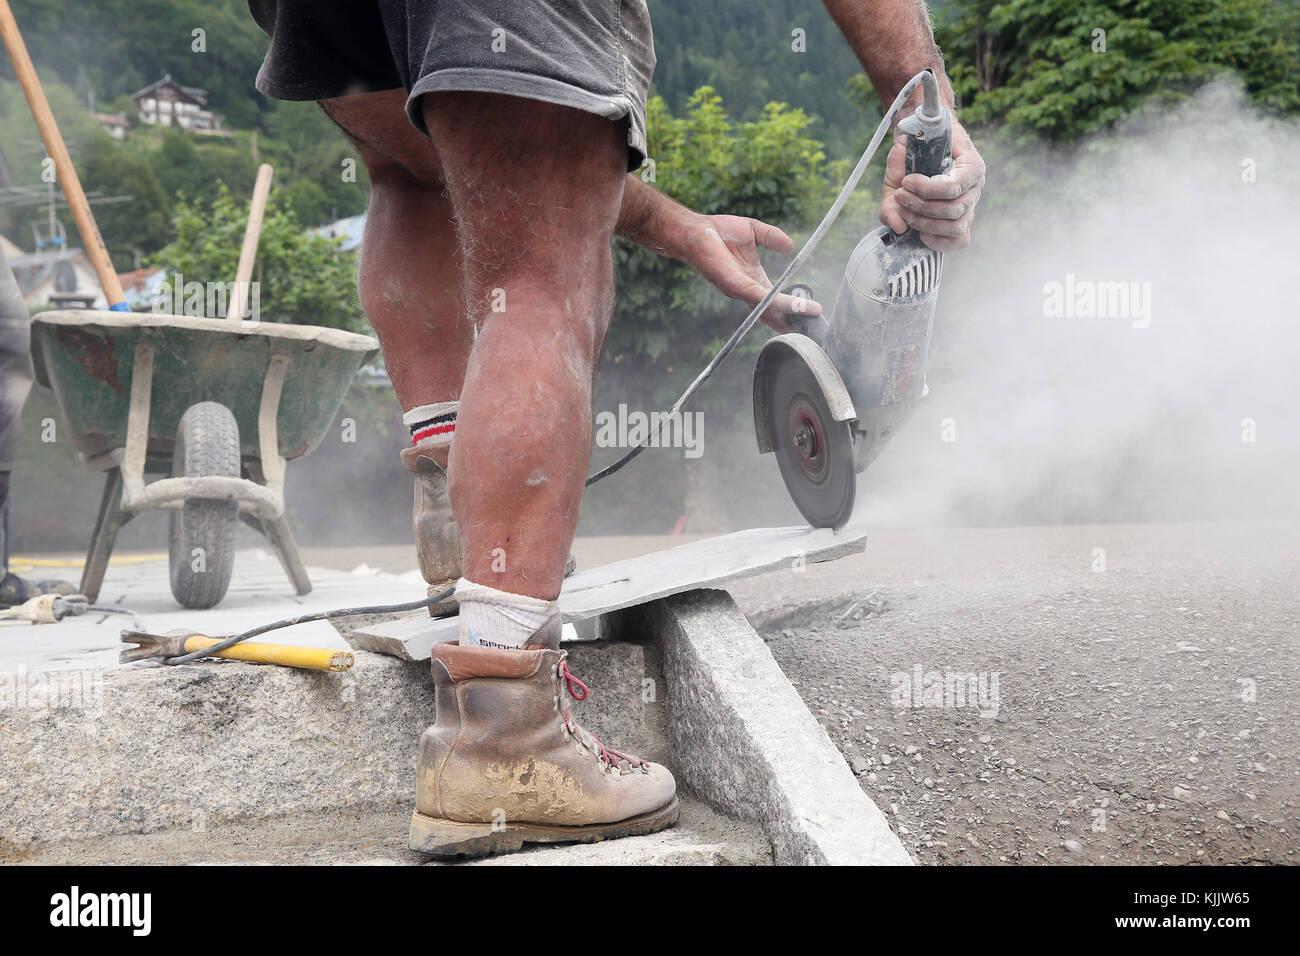 Worker  cuts stone tiles with a saw. France. Stock Photo